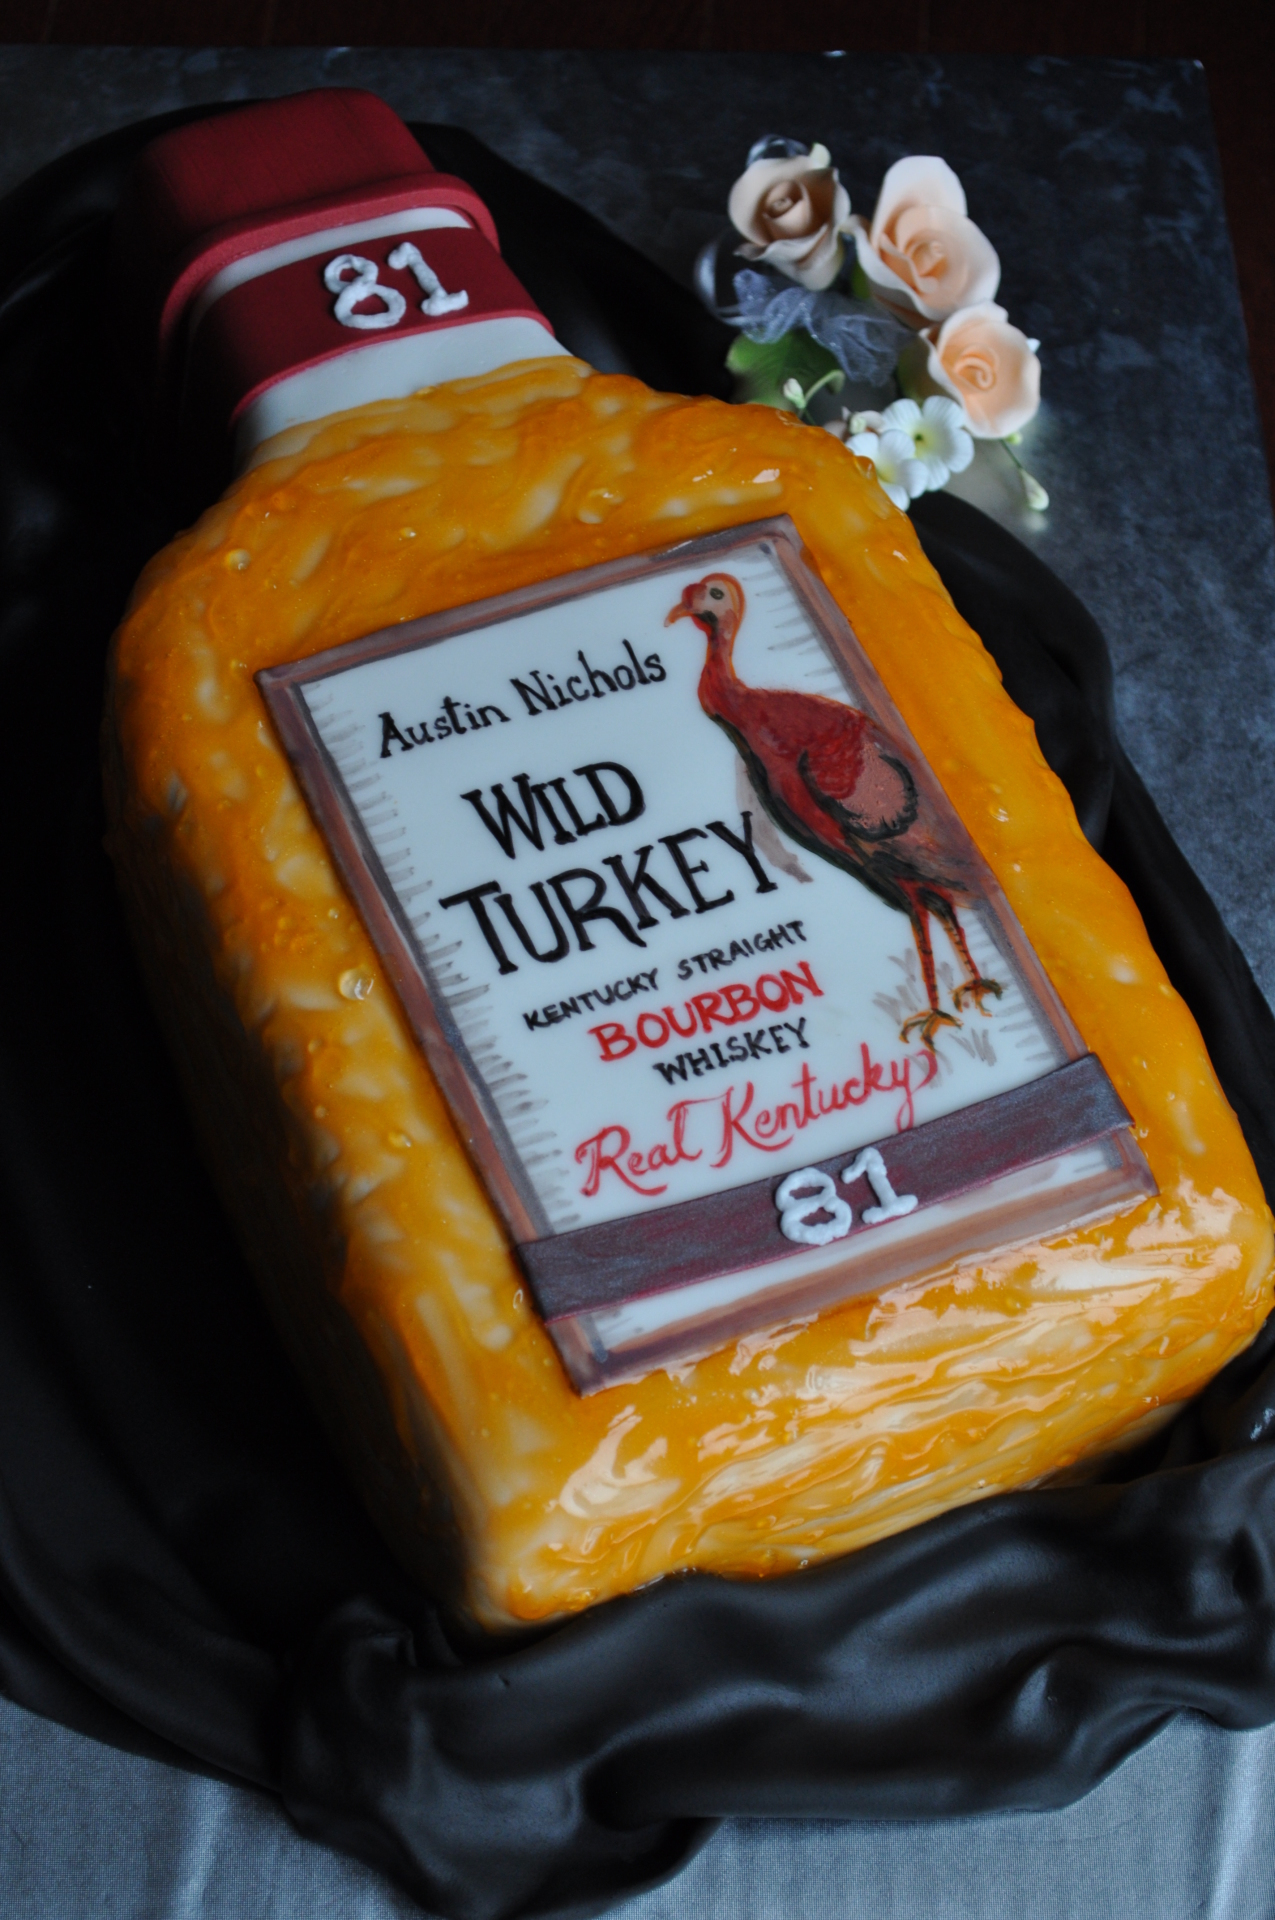 Wild Turkey bottle cake